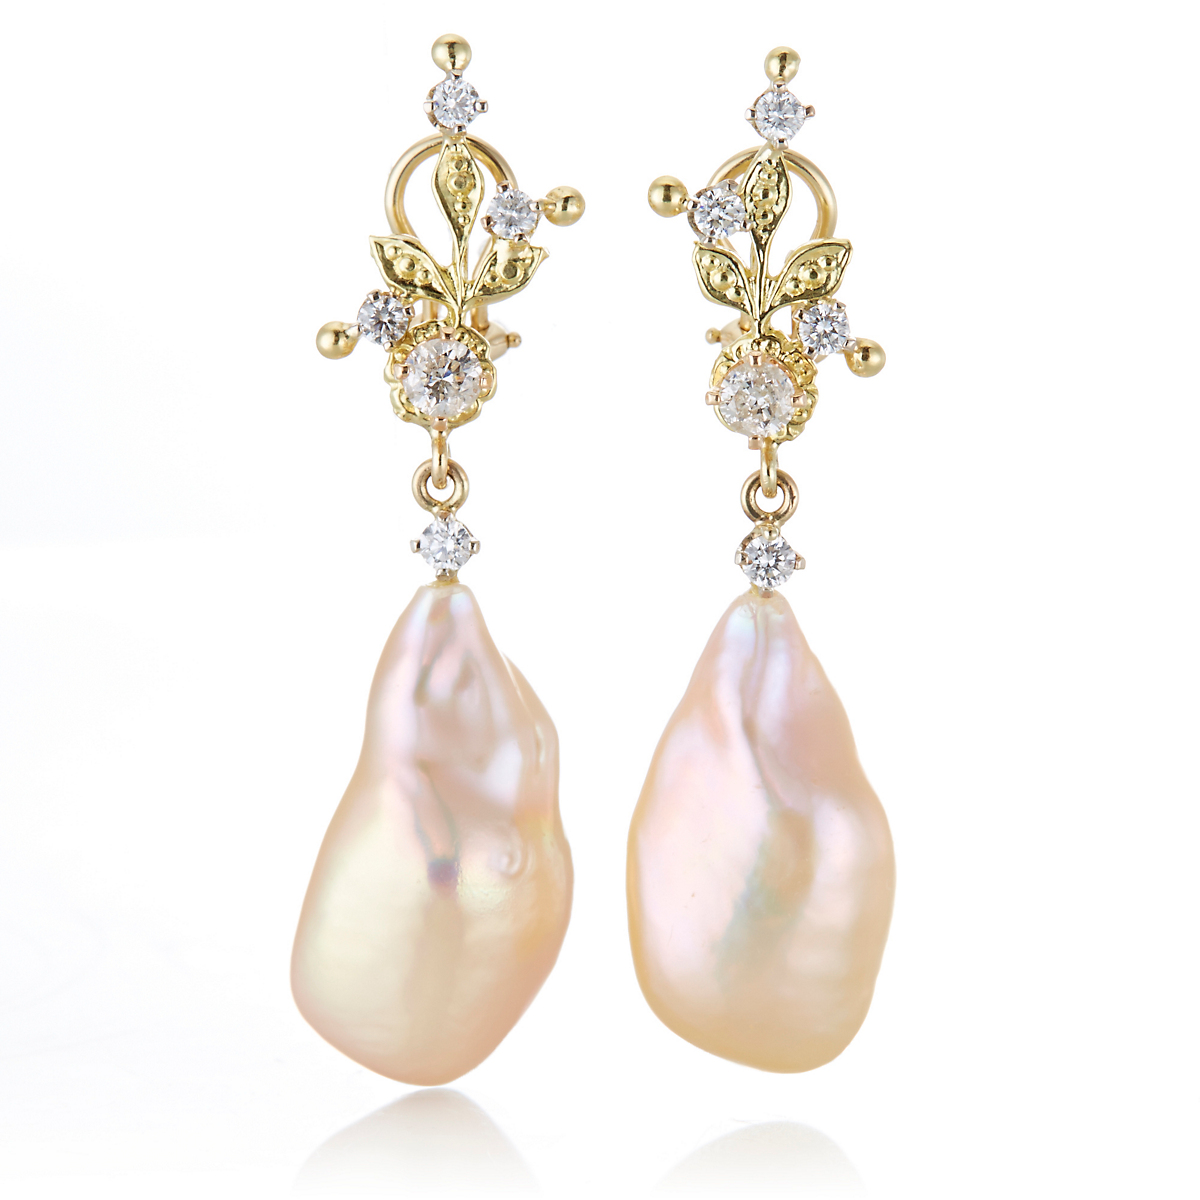 Russell Trusso Peach Baroque Pearl & Diamond Drop Earrings